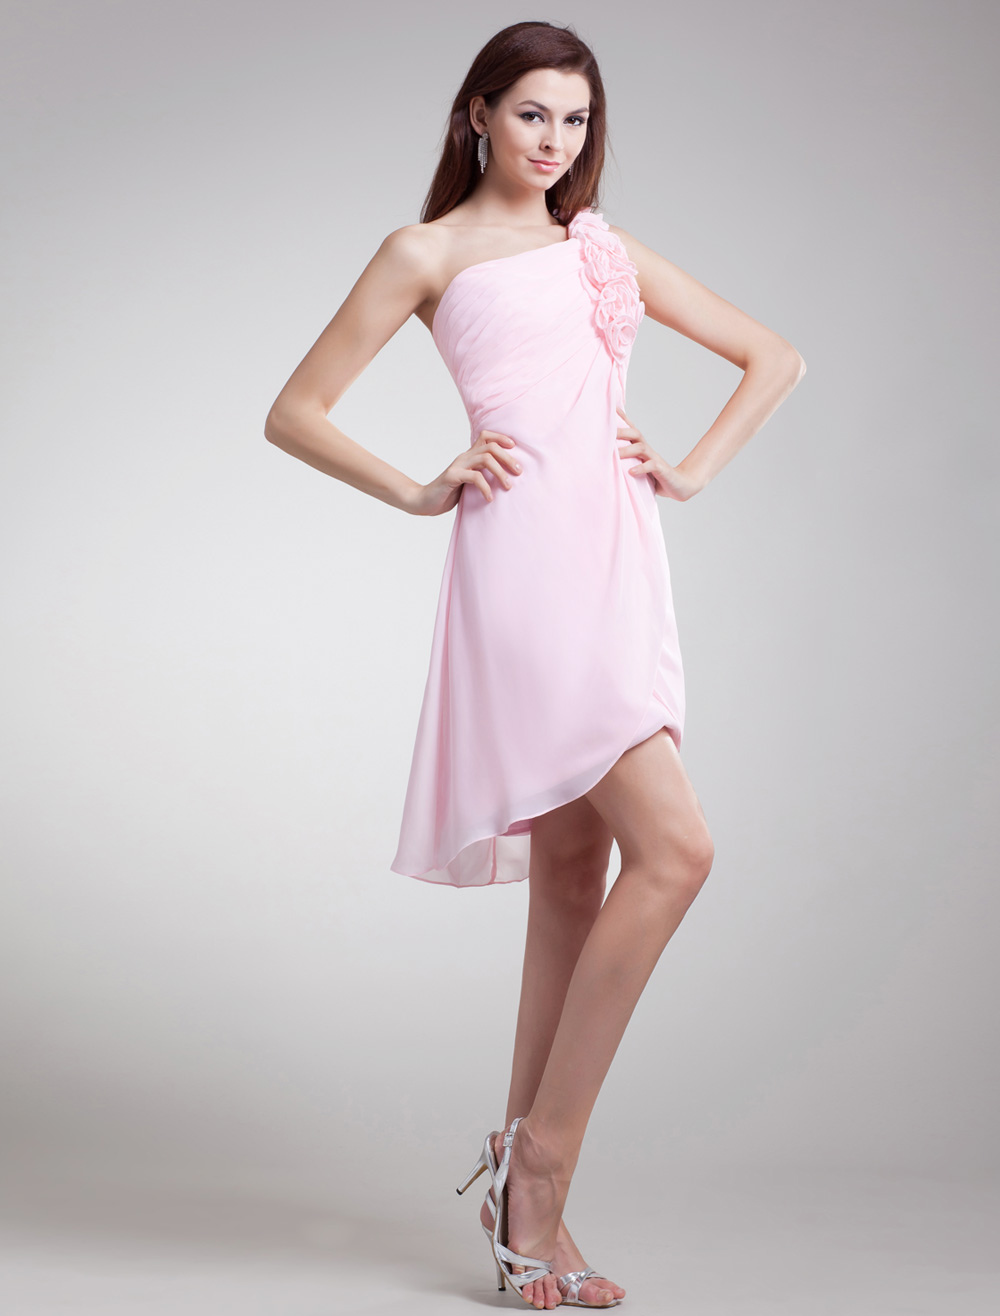 Sweet Pink Floral One-Shoulder Chiffon Short Fashion Bridesmaid Dress